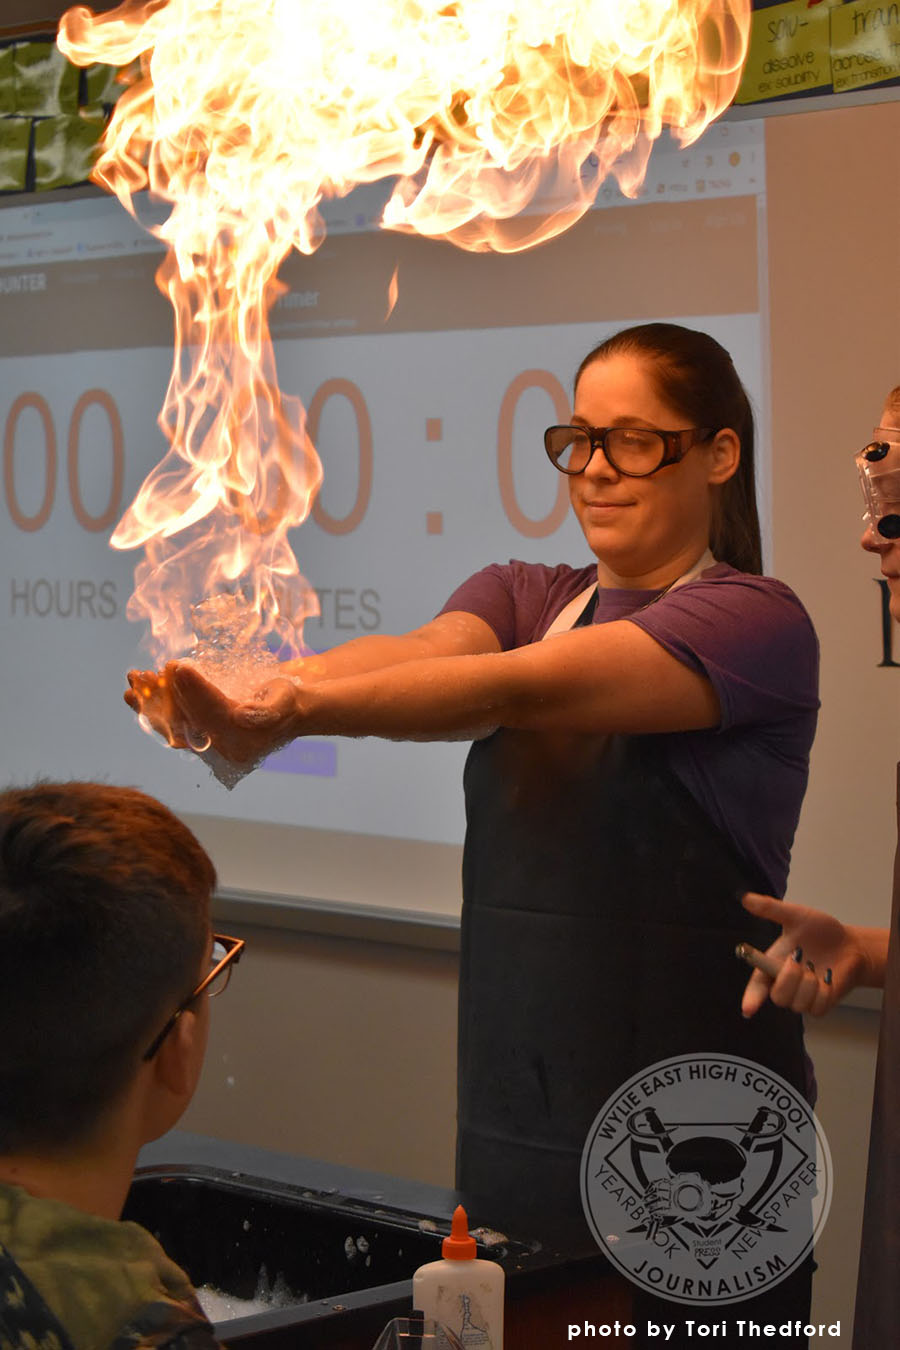 Girl+on+fire+%5C%5C+Holding+the+methane+flames%2C+chemistry+teacher+Mrs.+Lissa+Groter+demonstrates+to+her+first+period+chemistry+class+proper+safety+techniques+Nov.+20.+%22The+experiment+isn%E2%80%99t+scary+for+me+because+I%E2%80%99ve+done+it+before.+I+was+a+little+nervous+the+first+time+I+did+it%2C%22+Groter+said.